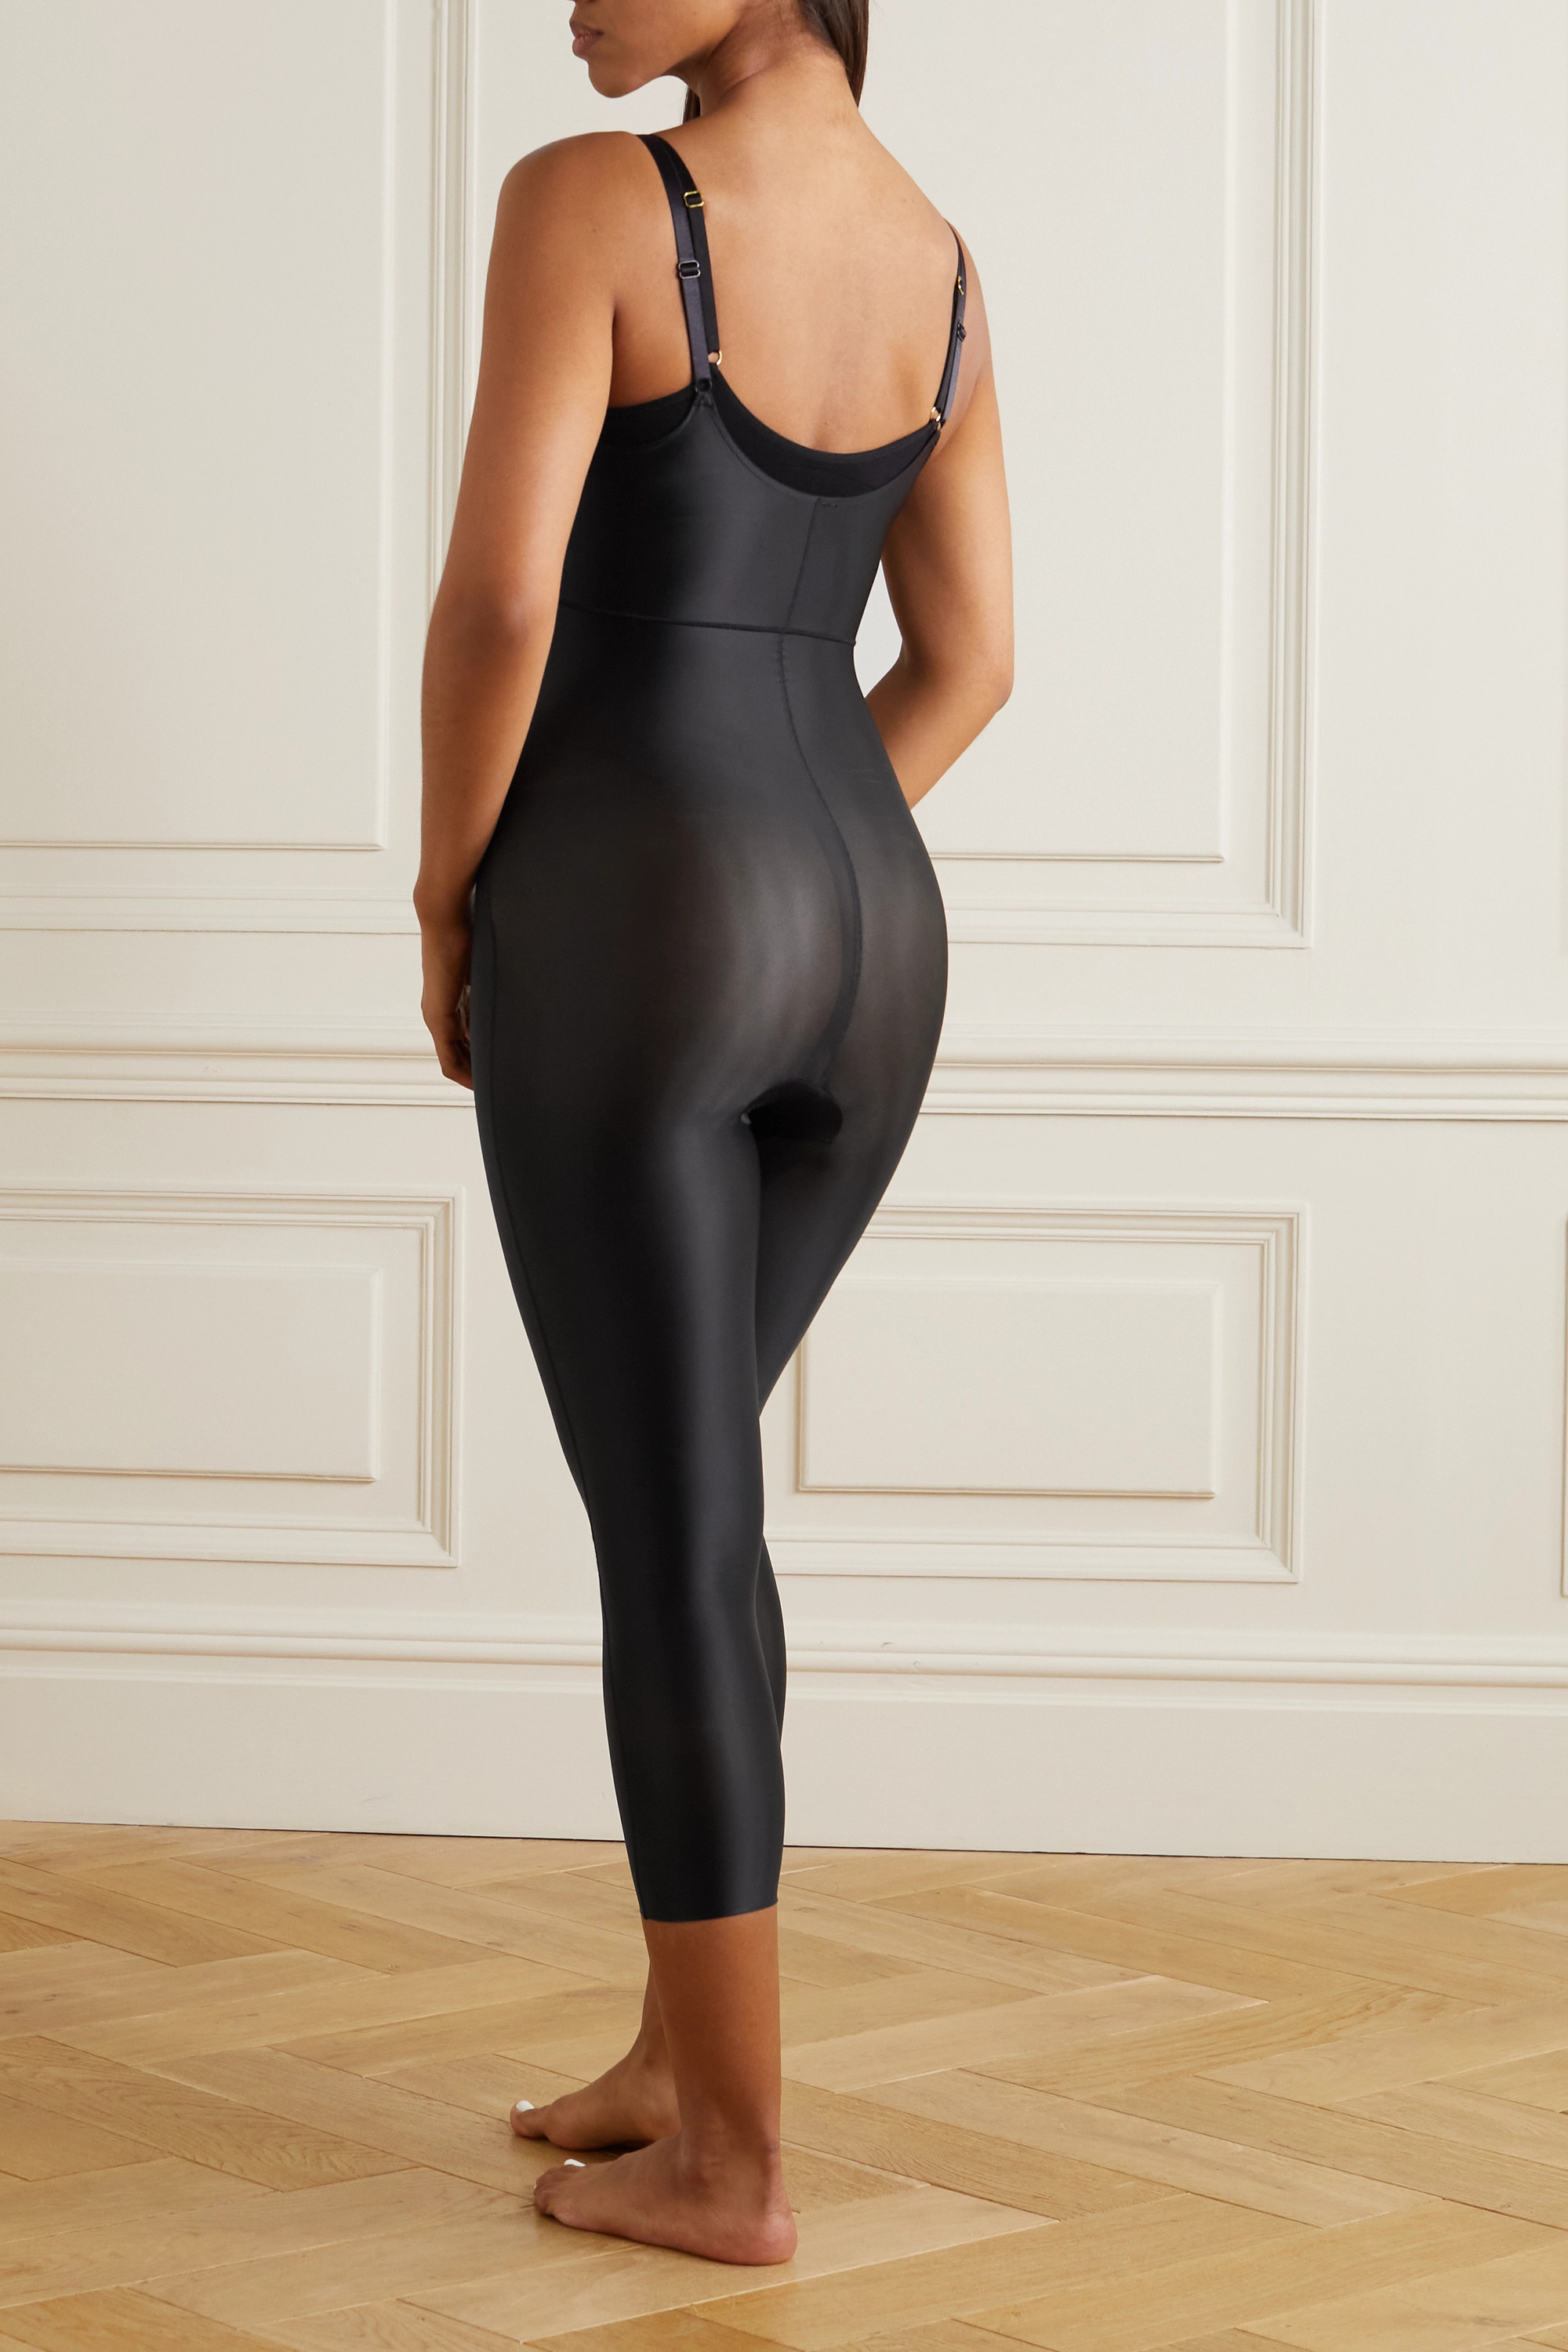 Spanx Suit Your Fancy Body aus Stretch-Material